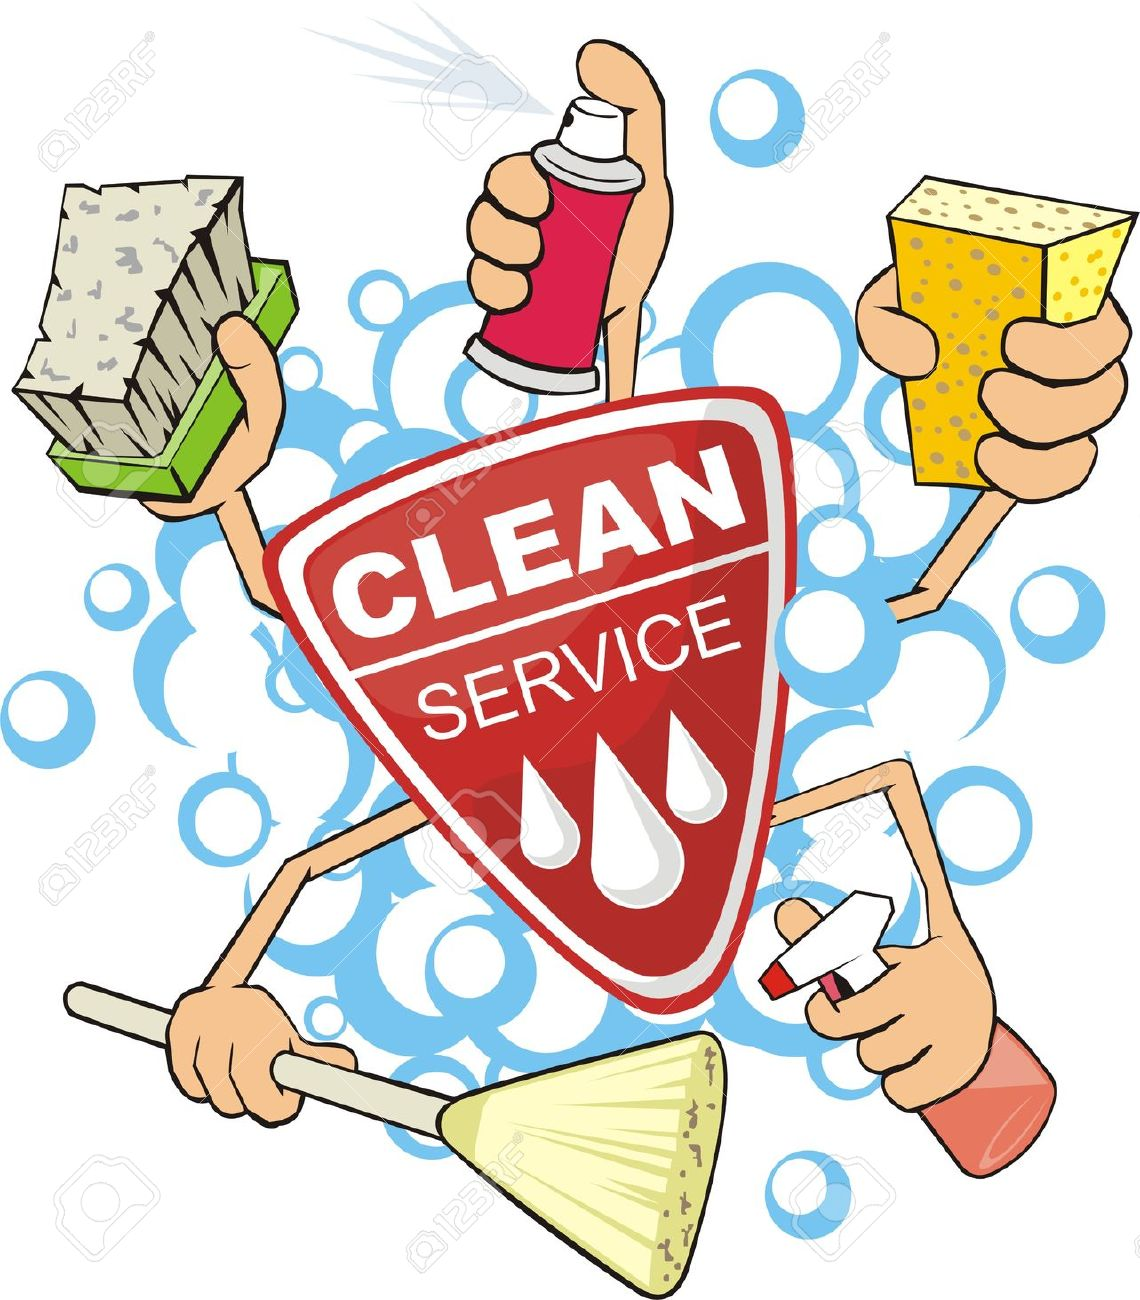 keep clean: sign of the .